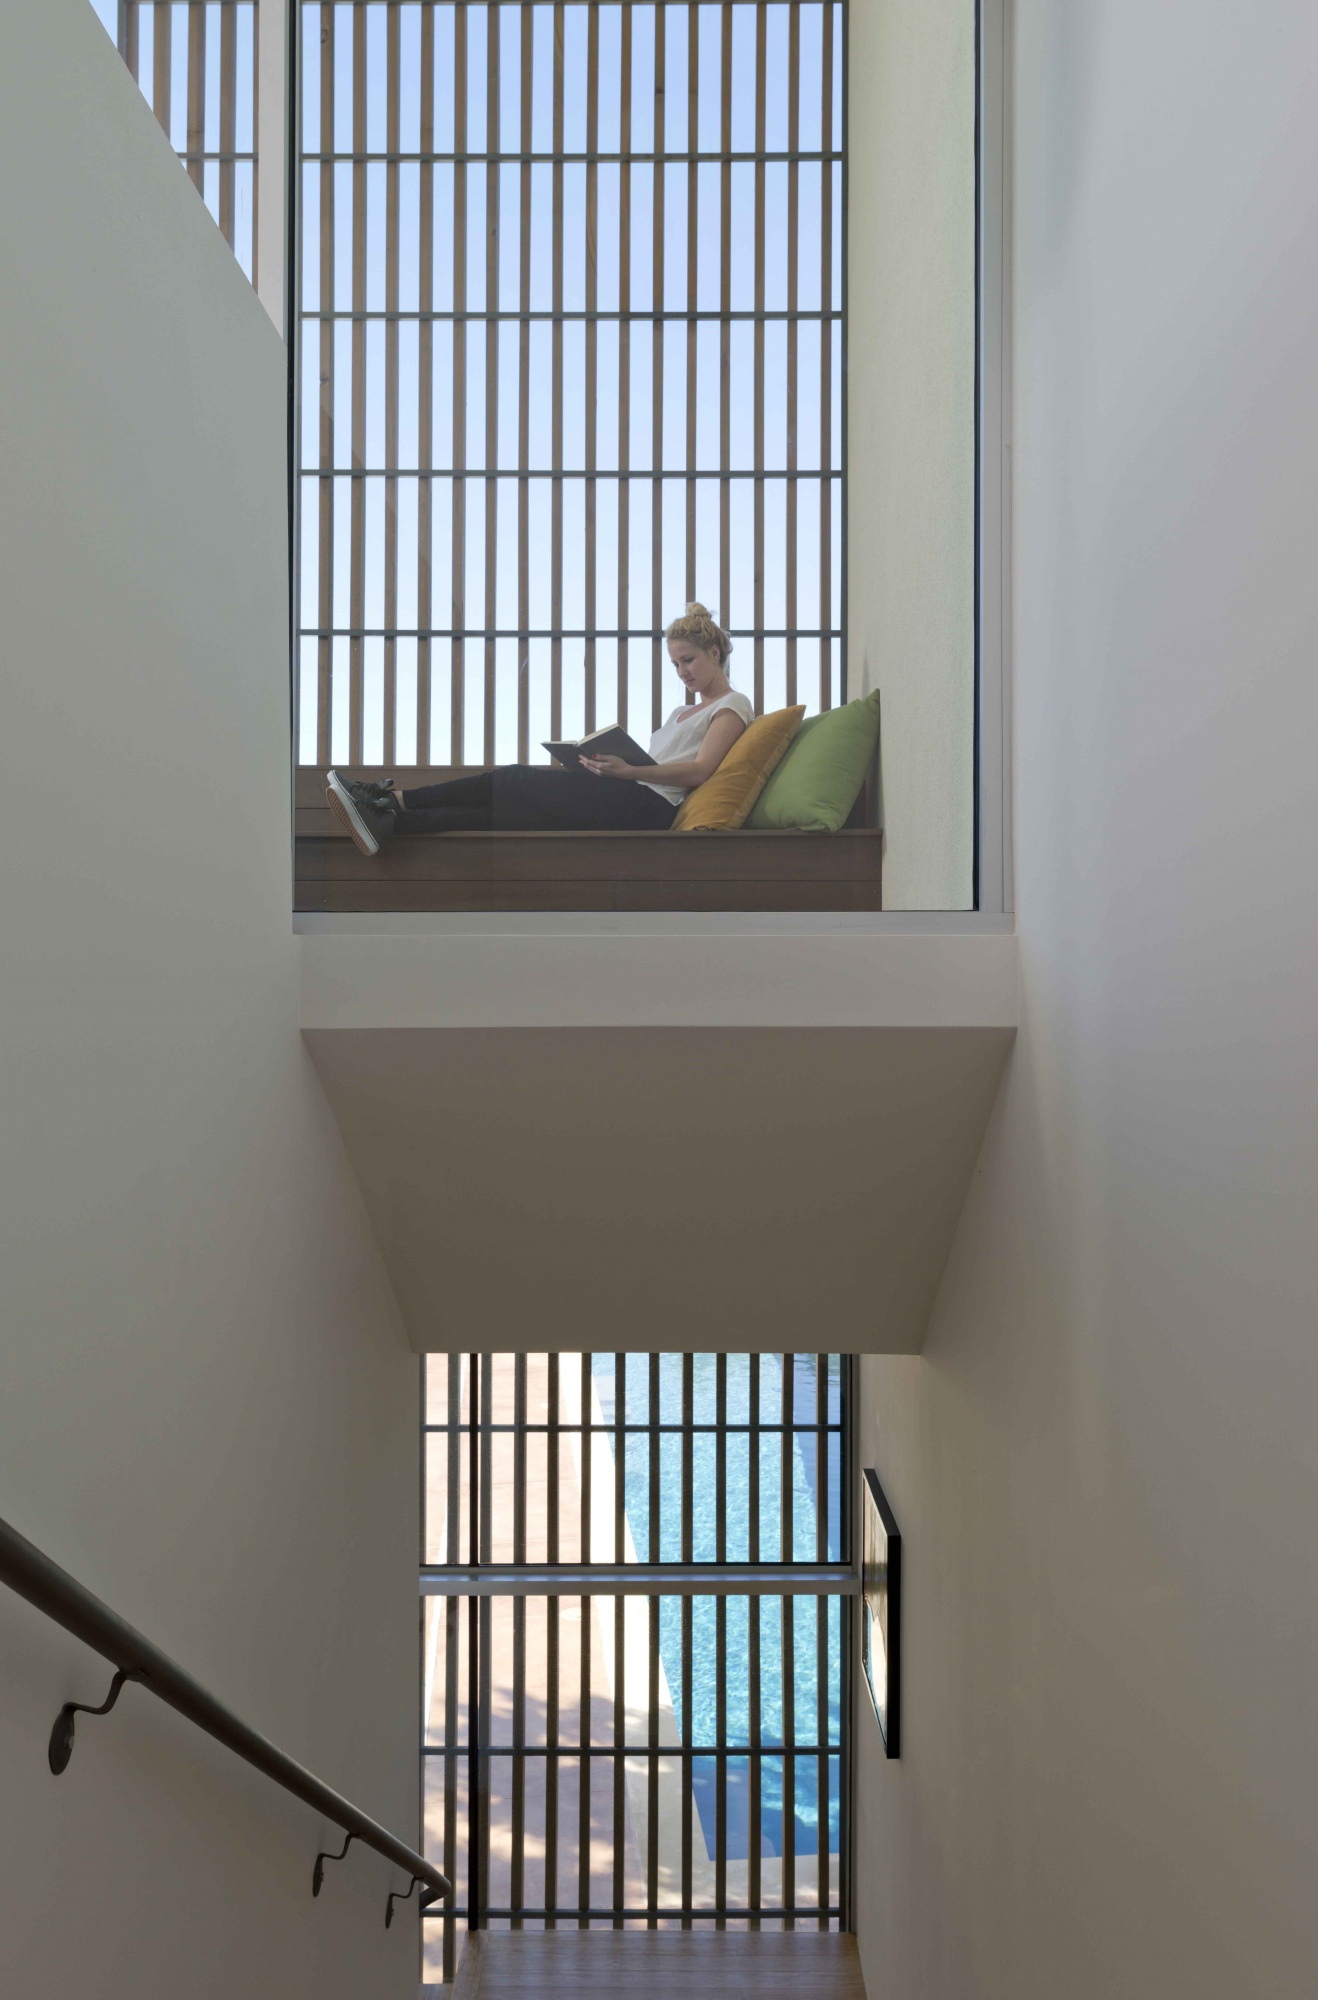 Sheltered balcony provides for an outdoor experience that overlooks the pool and the city beyond.